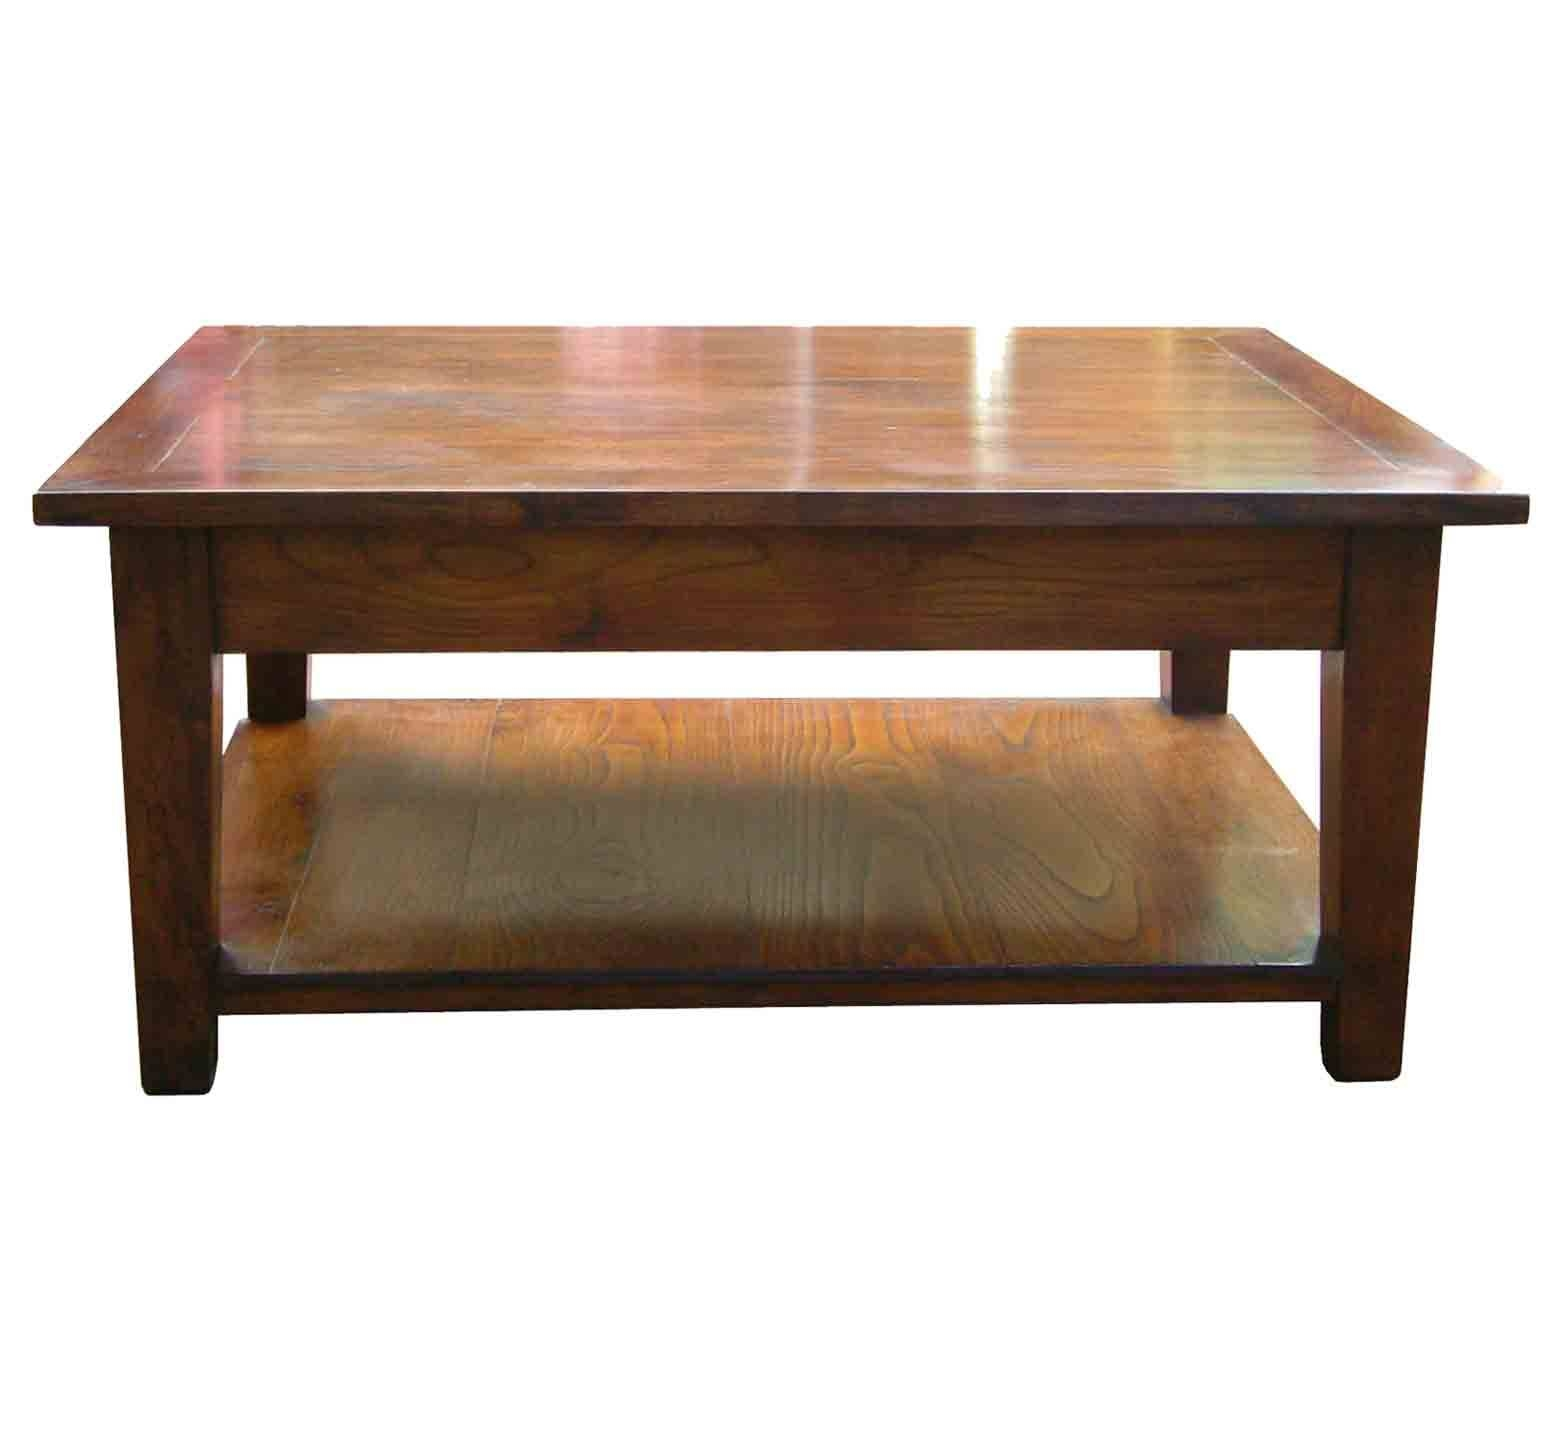 Southwold Solid Cherry Wood Coffee Table With Pot Board » Handmade with regard to Large Solid Wood Coffee Tables (Image 13 of 15)